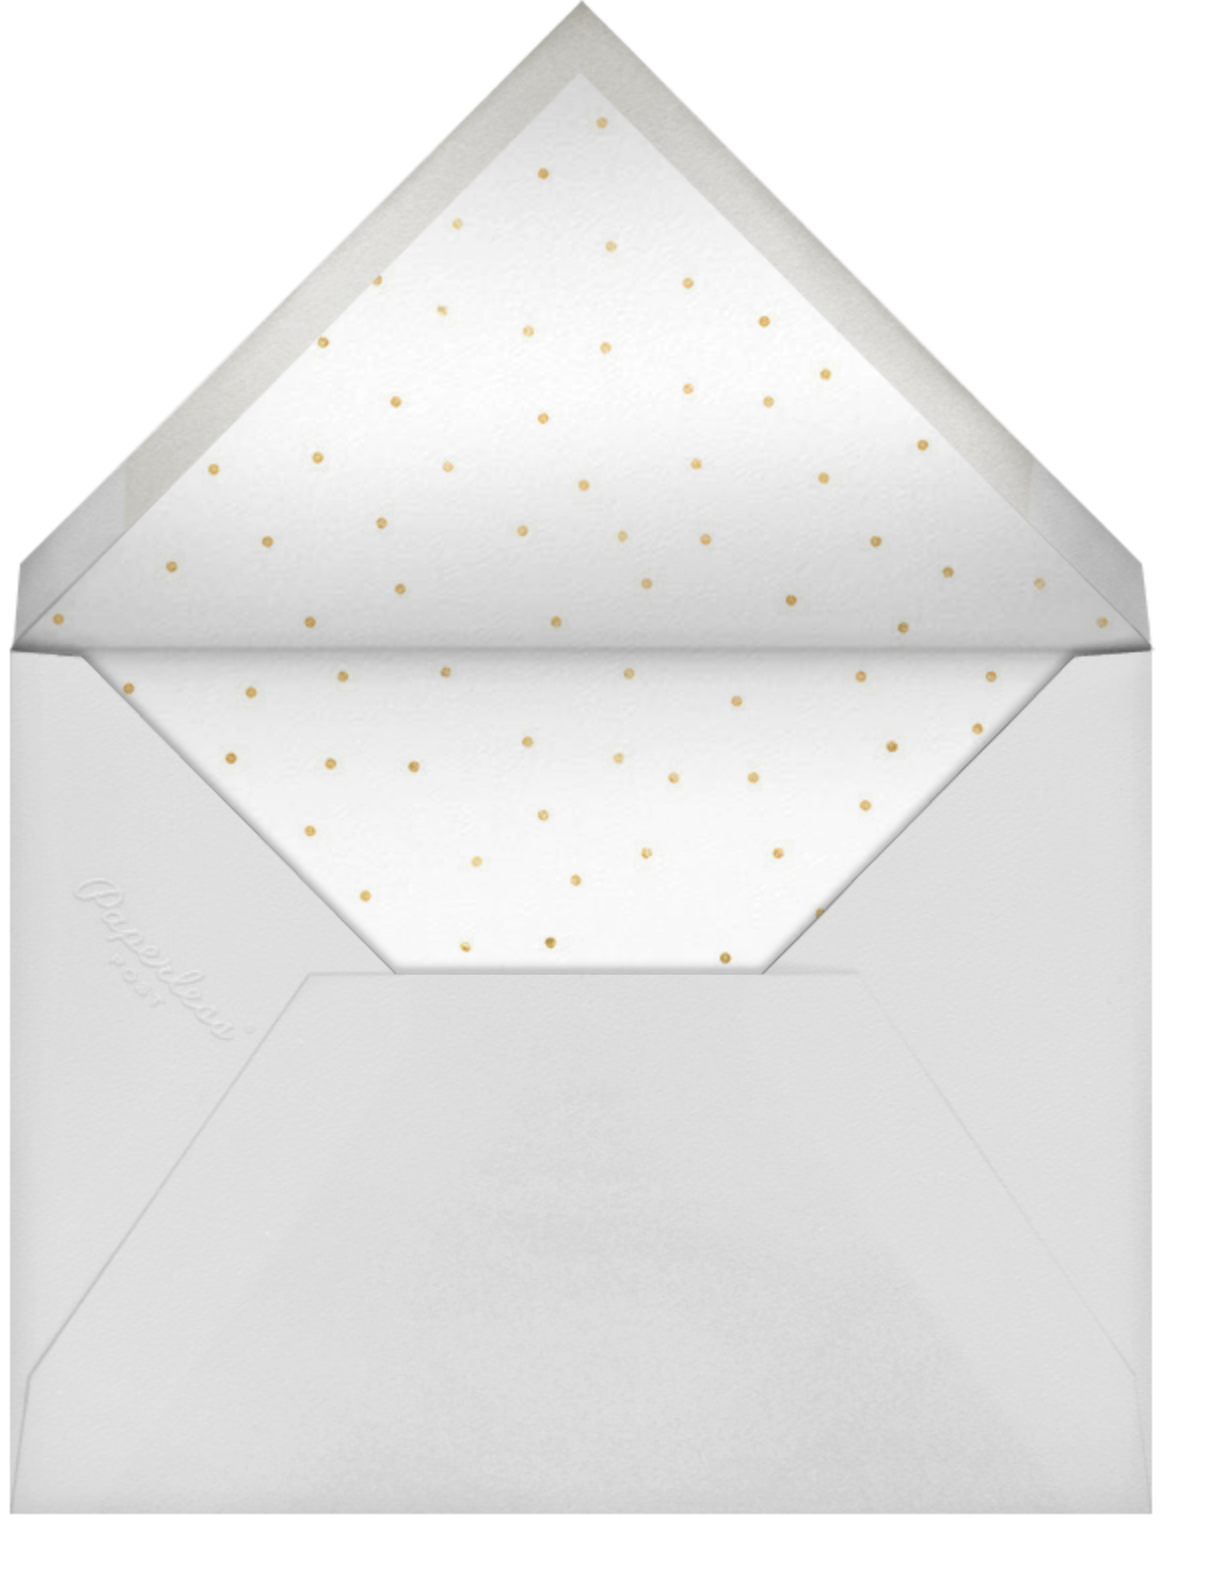 Firework - White - Paperless Post - Professional events - envelope back